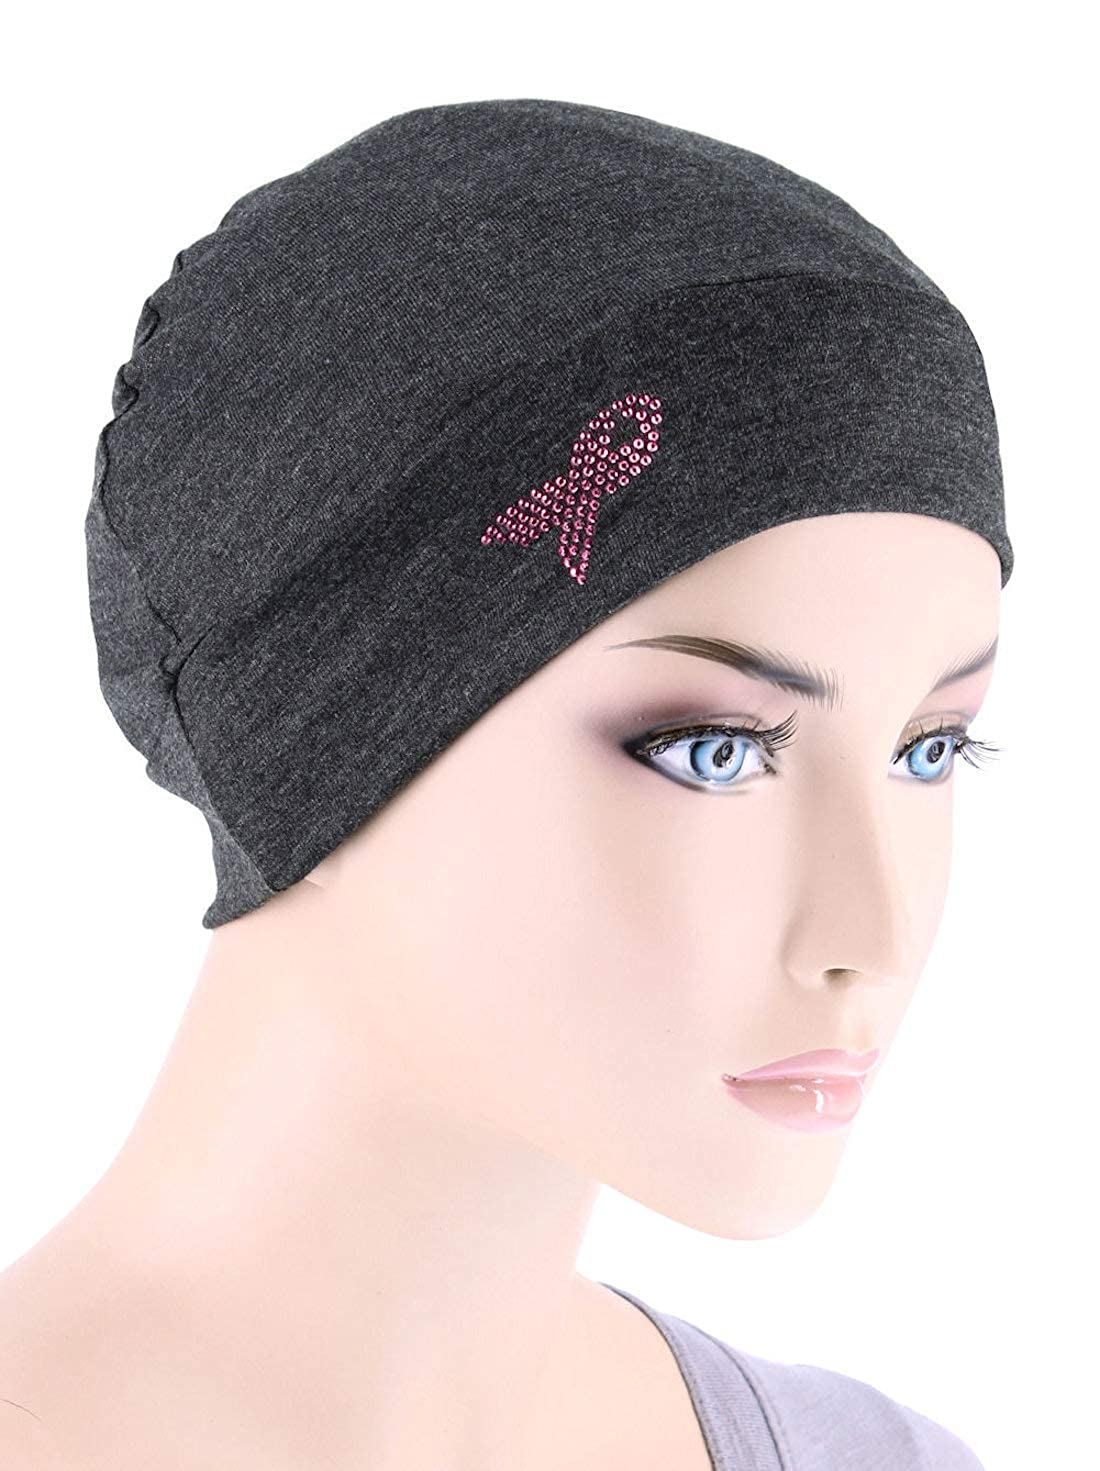 Amazoncom Breast Cancer Awareness Soft Comfy Chemo Cap Hat With